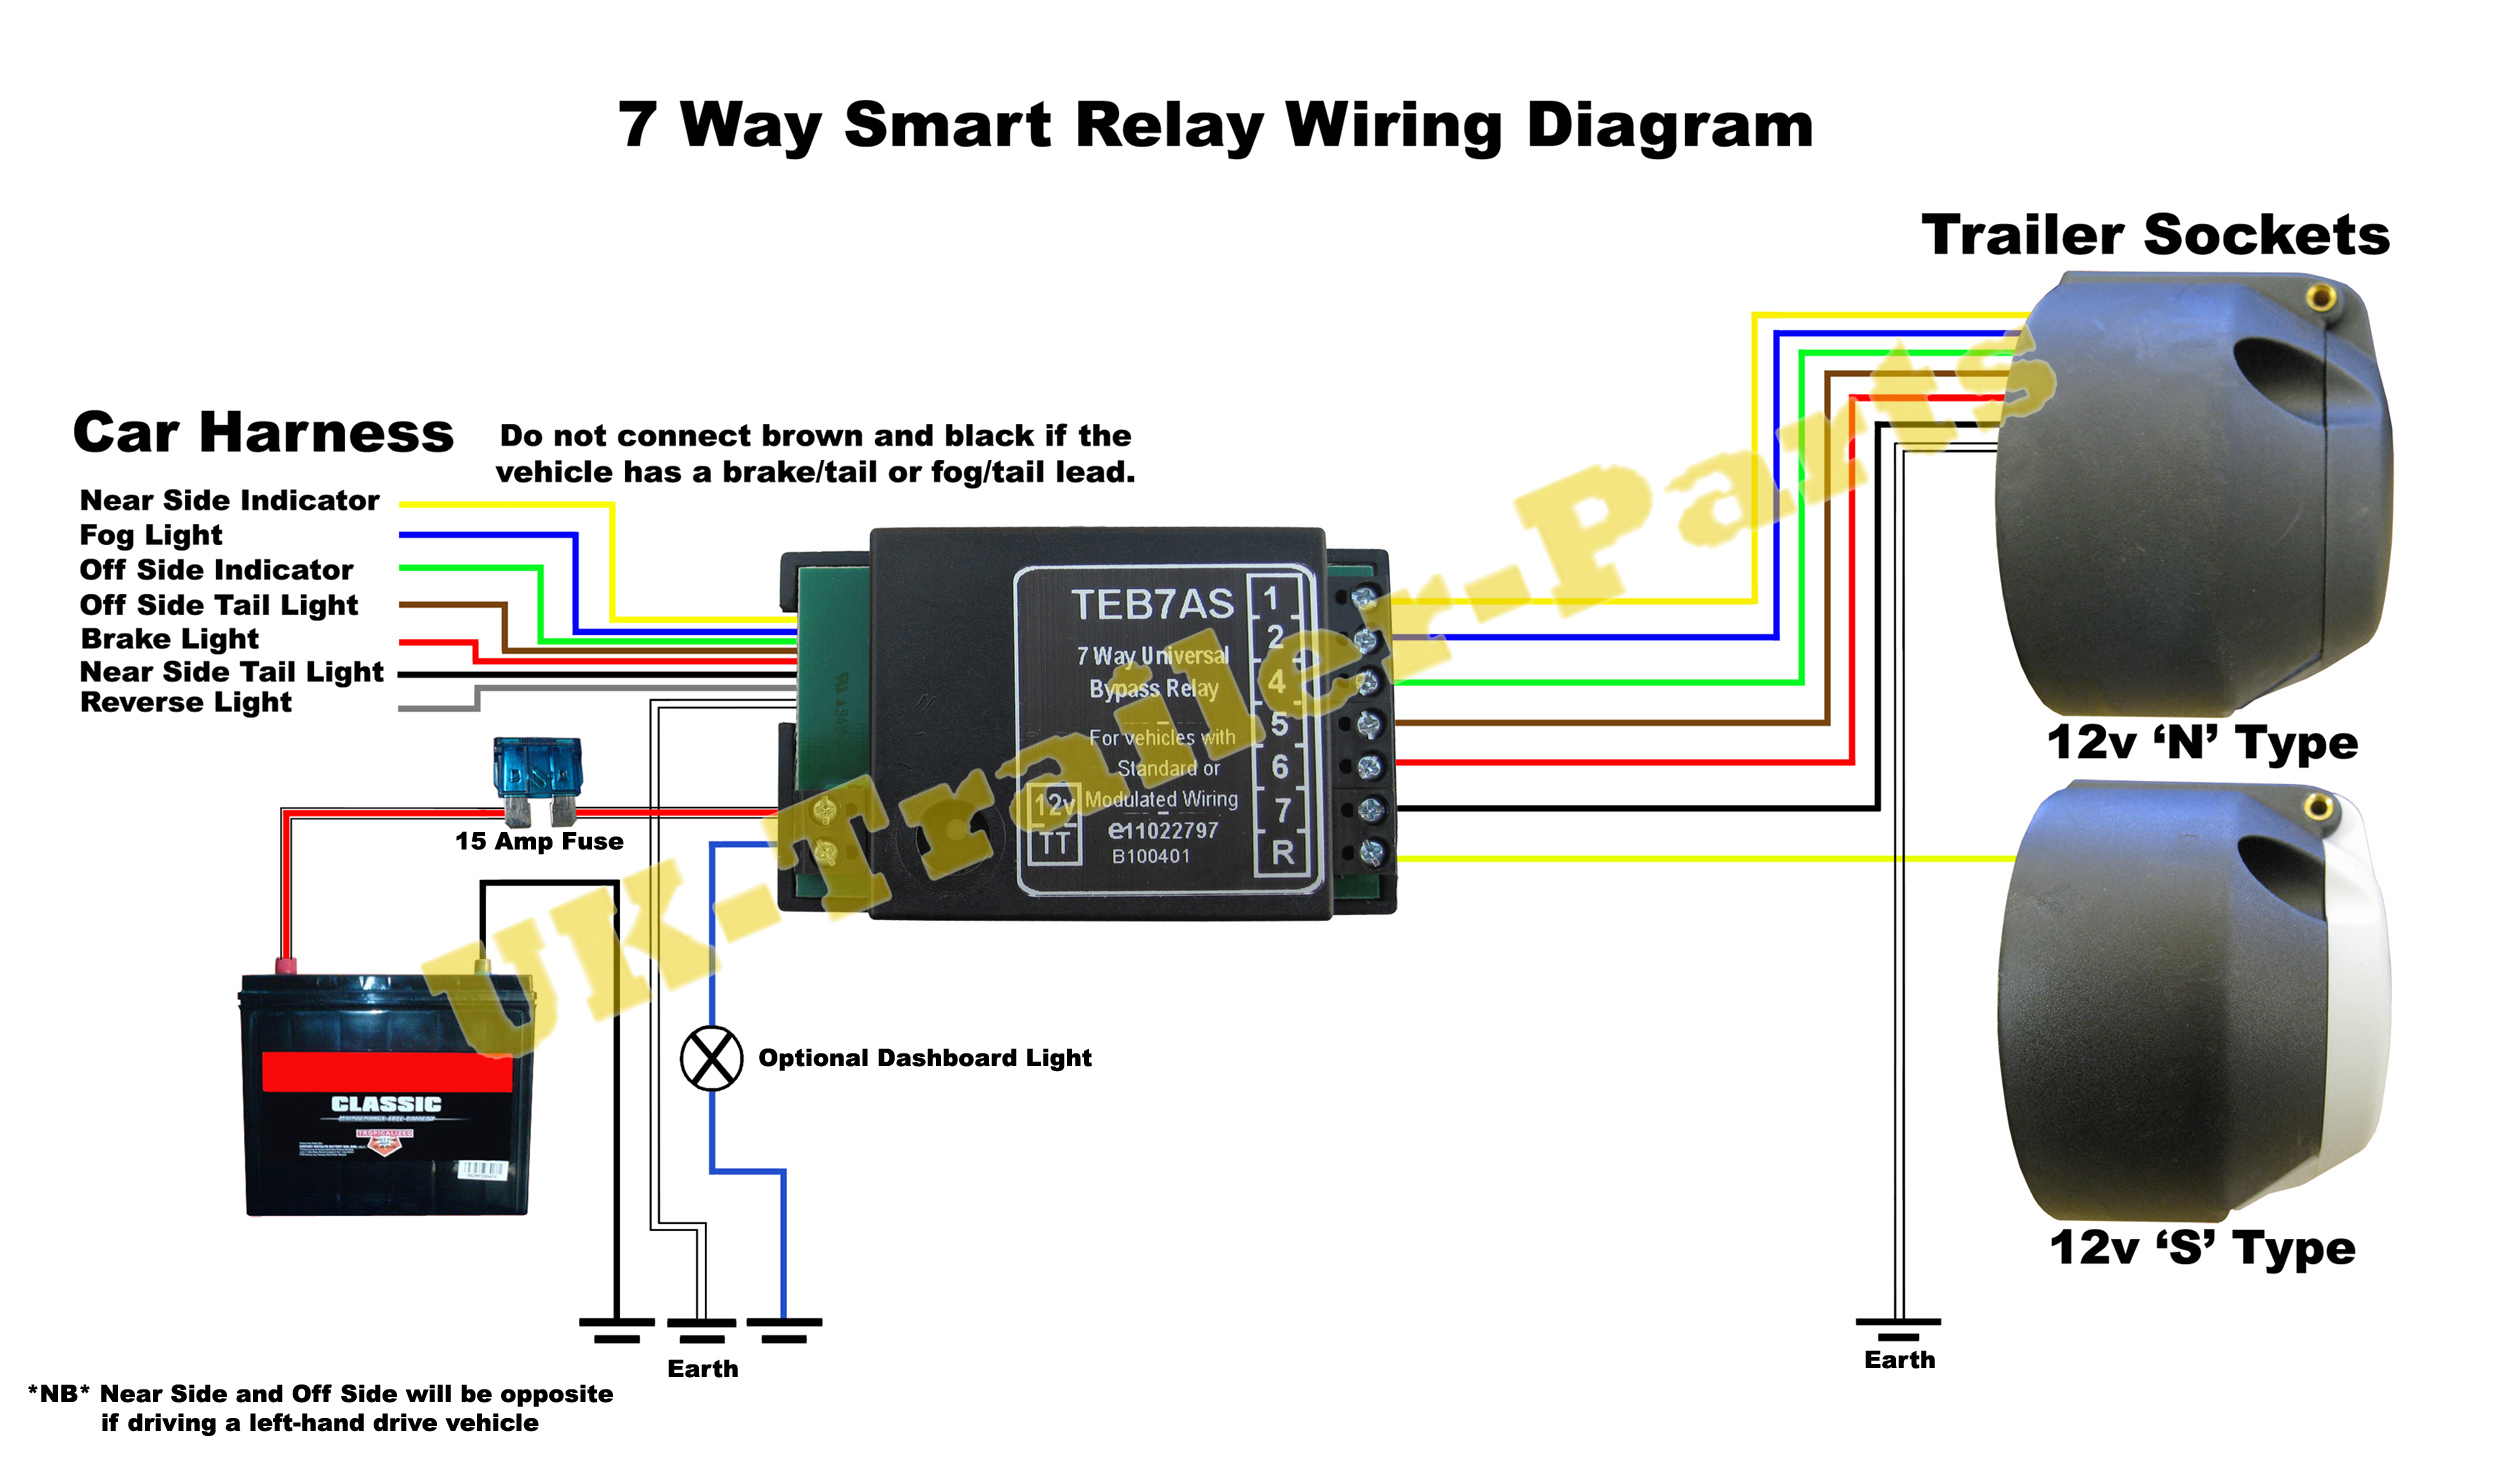 smart relay wiring diagram2 7 way universal bypass relay wiring diagram uk trailer parts 13 pin trailer socket wiring diagram uk at eliteediting.co